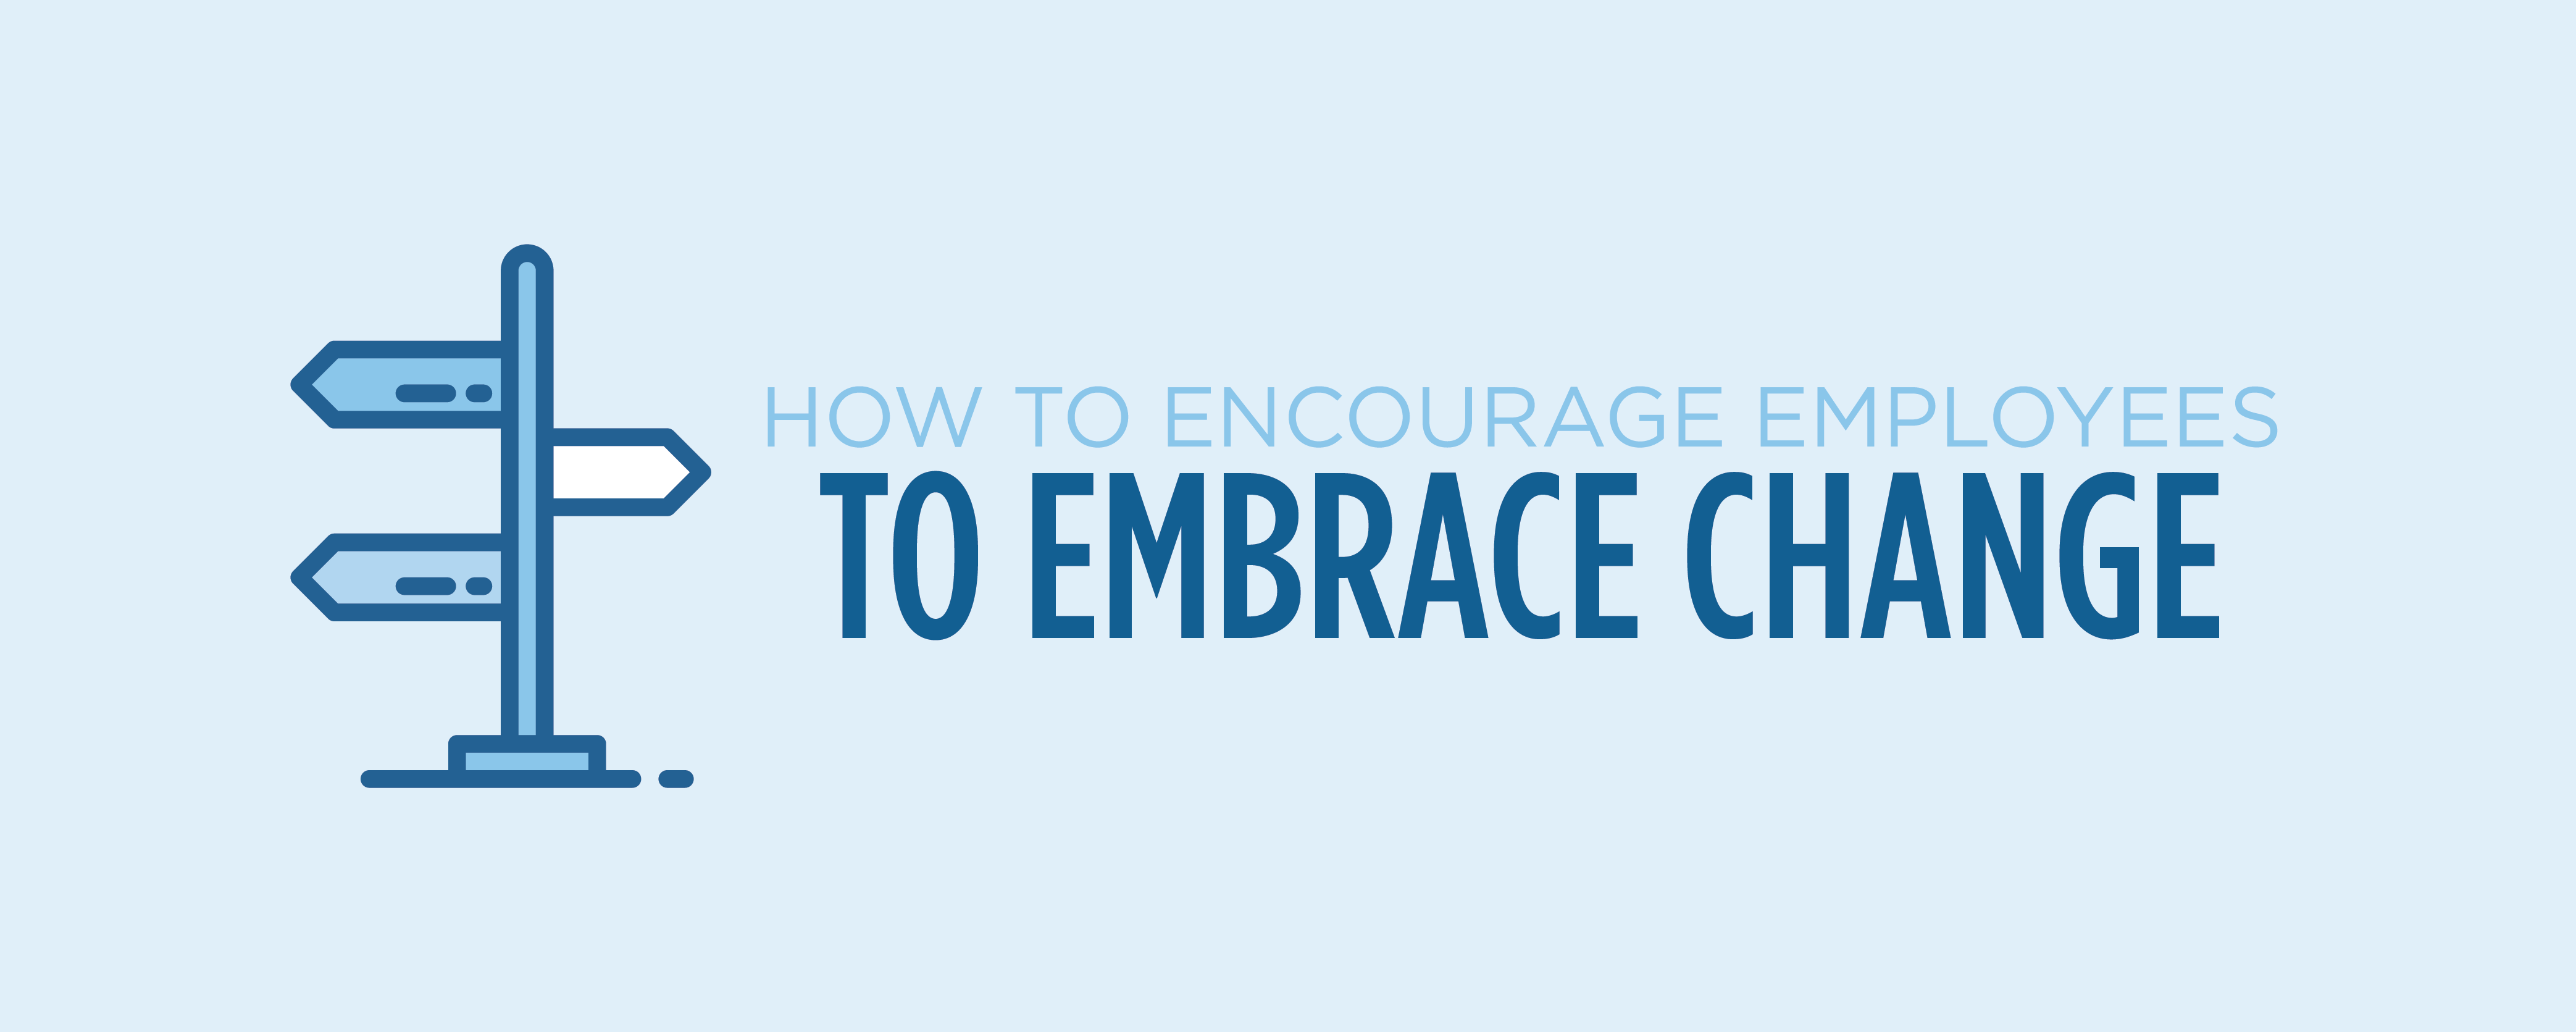 how to encourage employees to embrace change